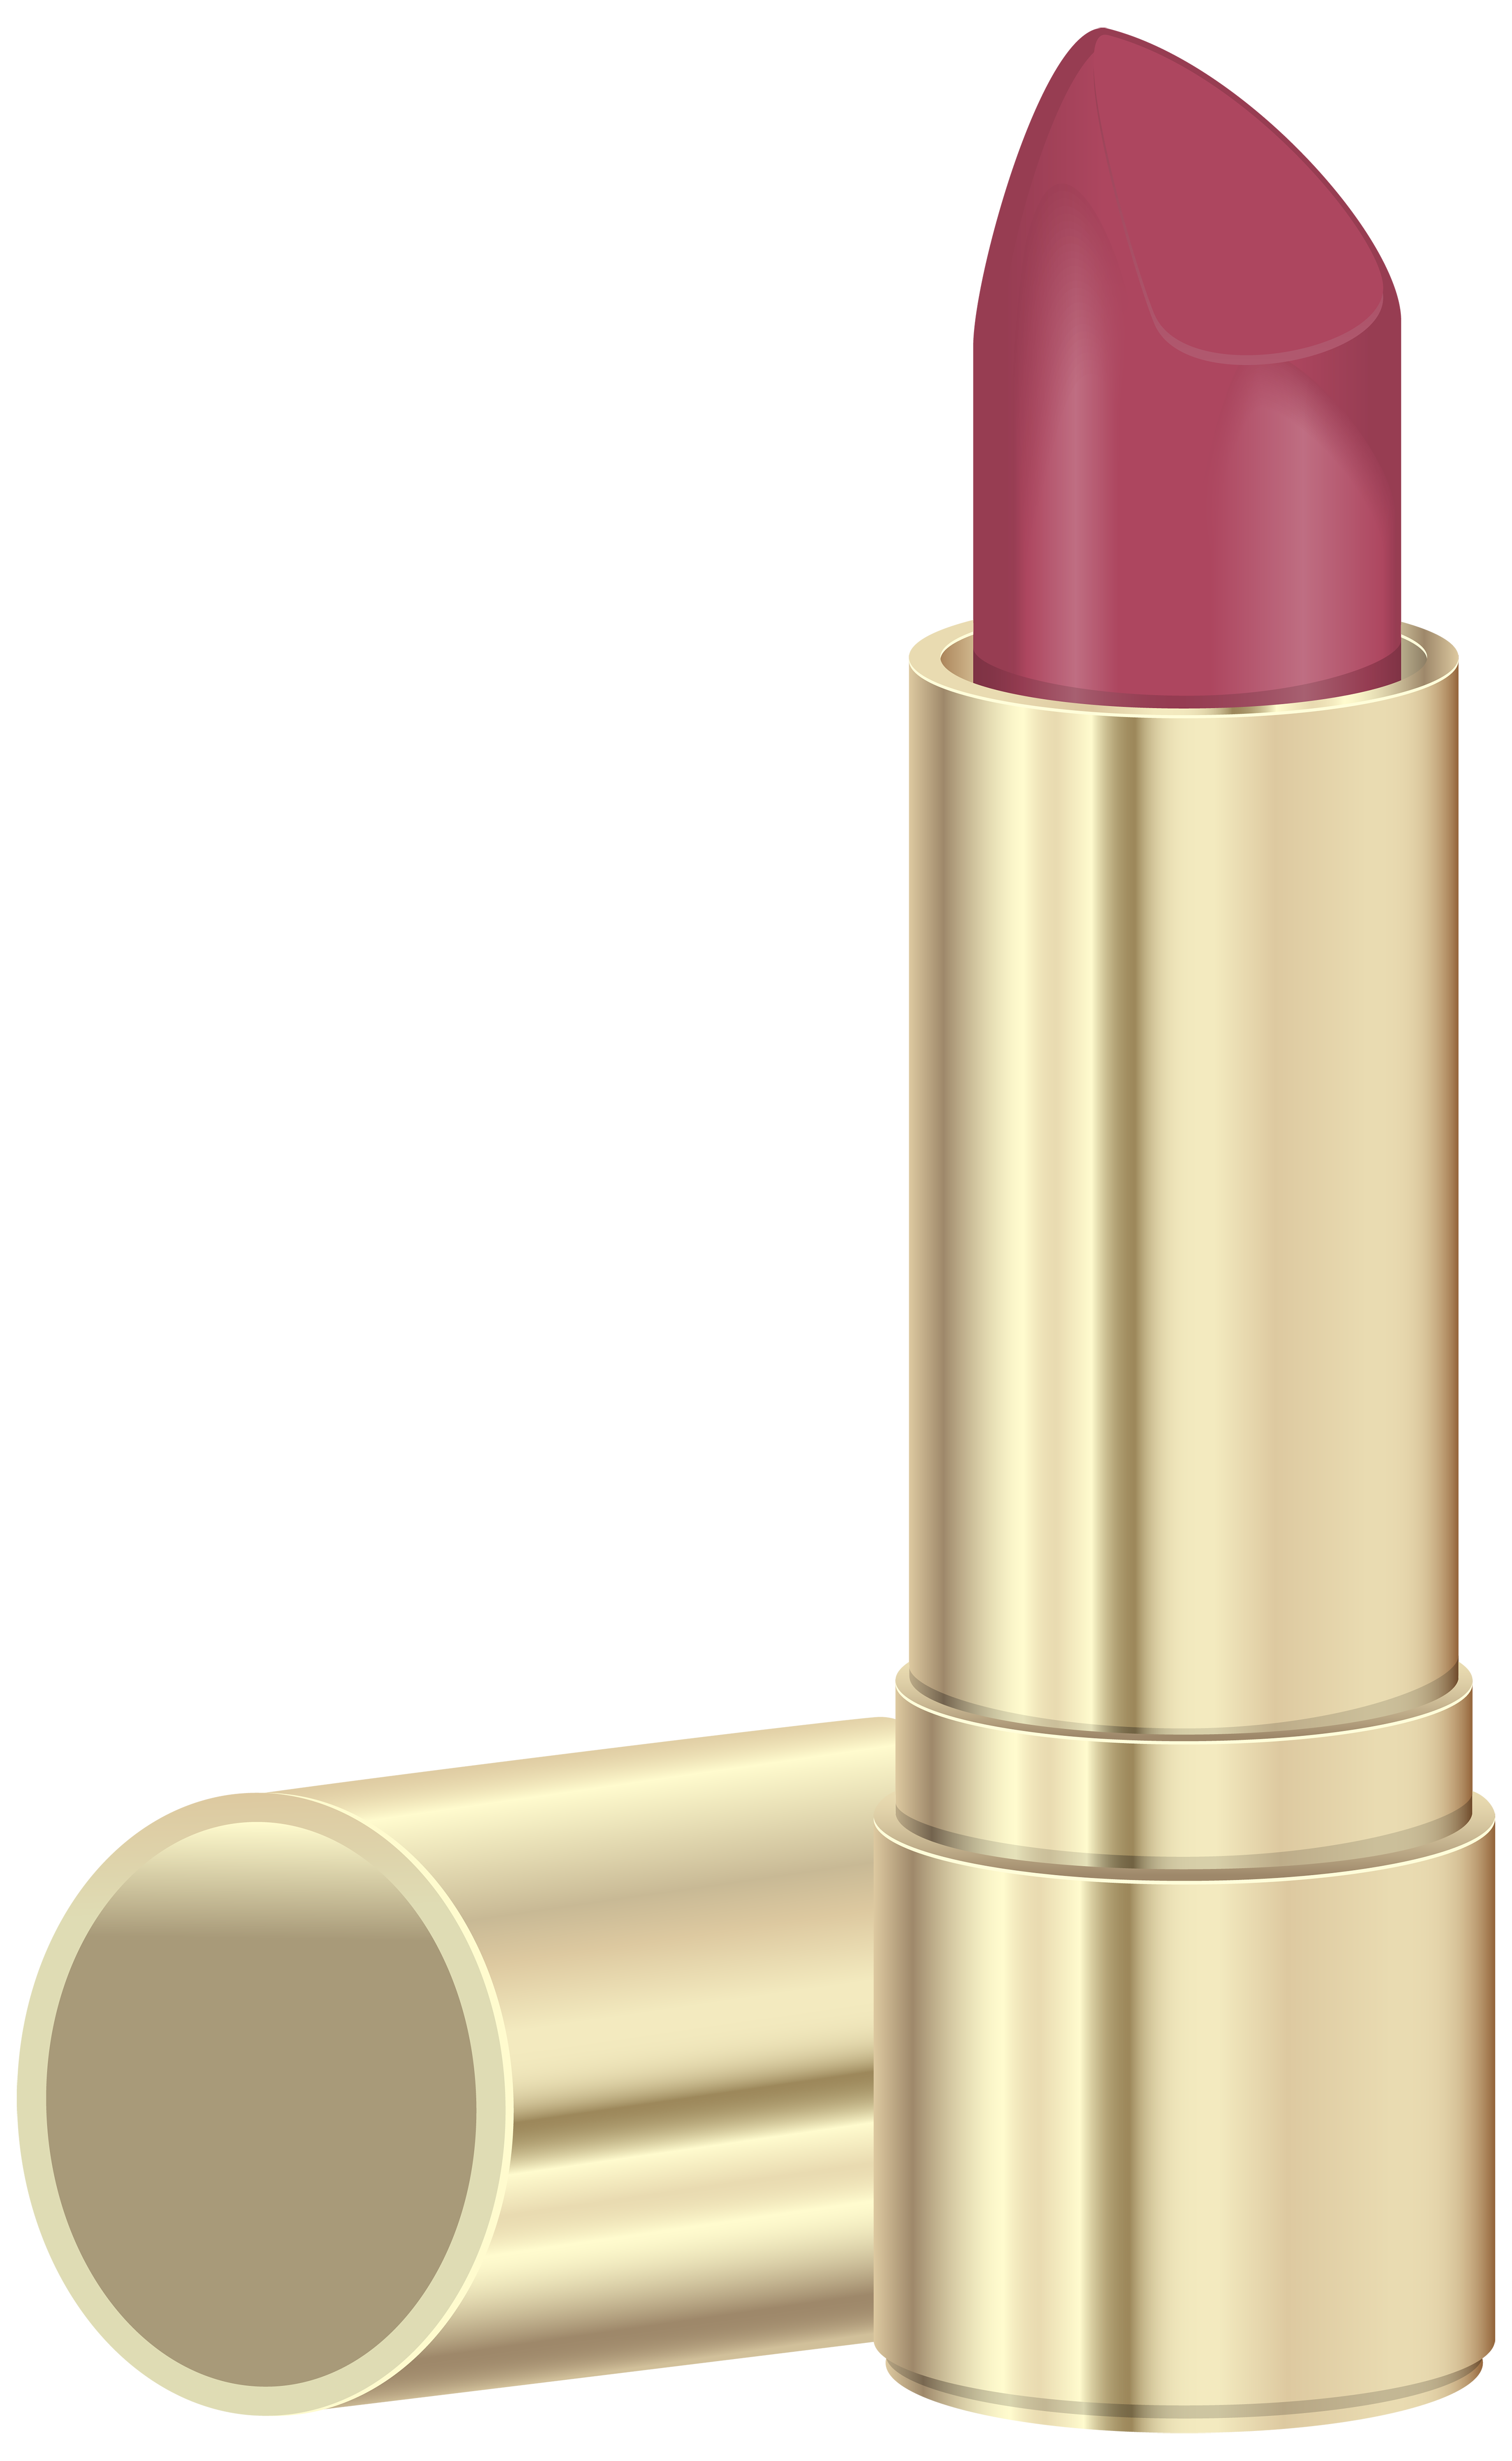 Lipstick clipart free picture library library Free Lipstick Cliparts, Download Free Clip Art, Free Clip ... picture library library